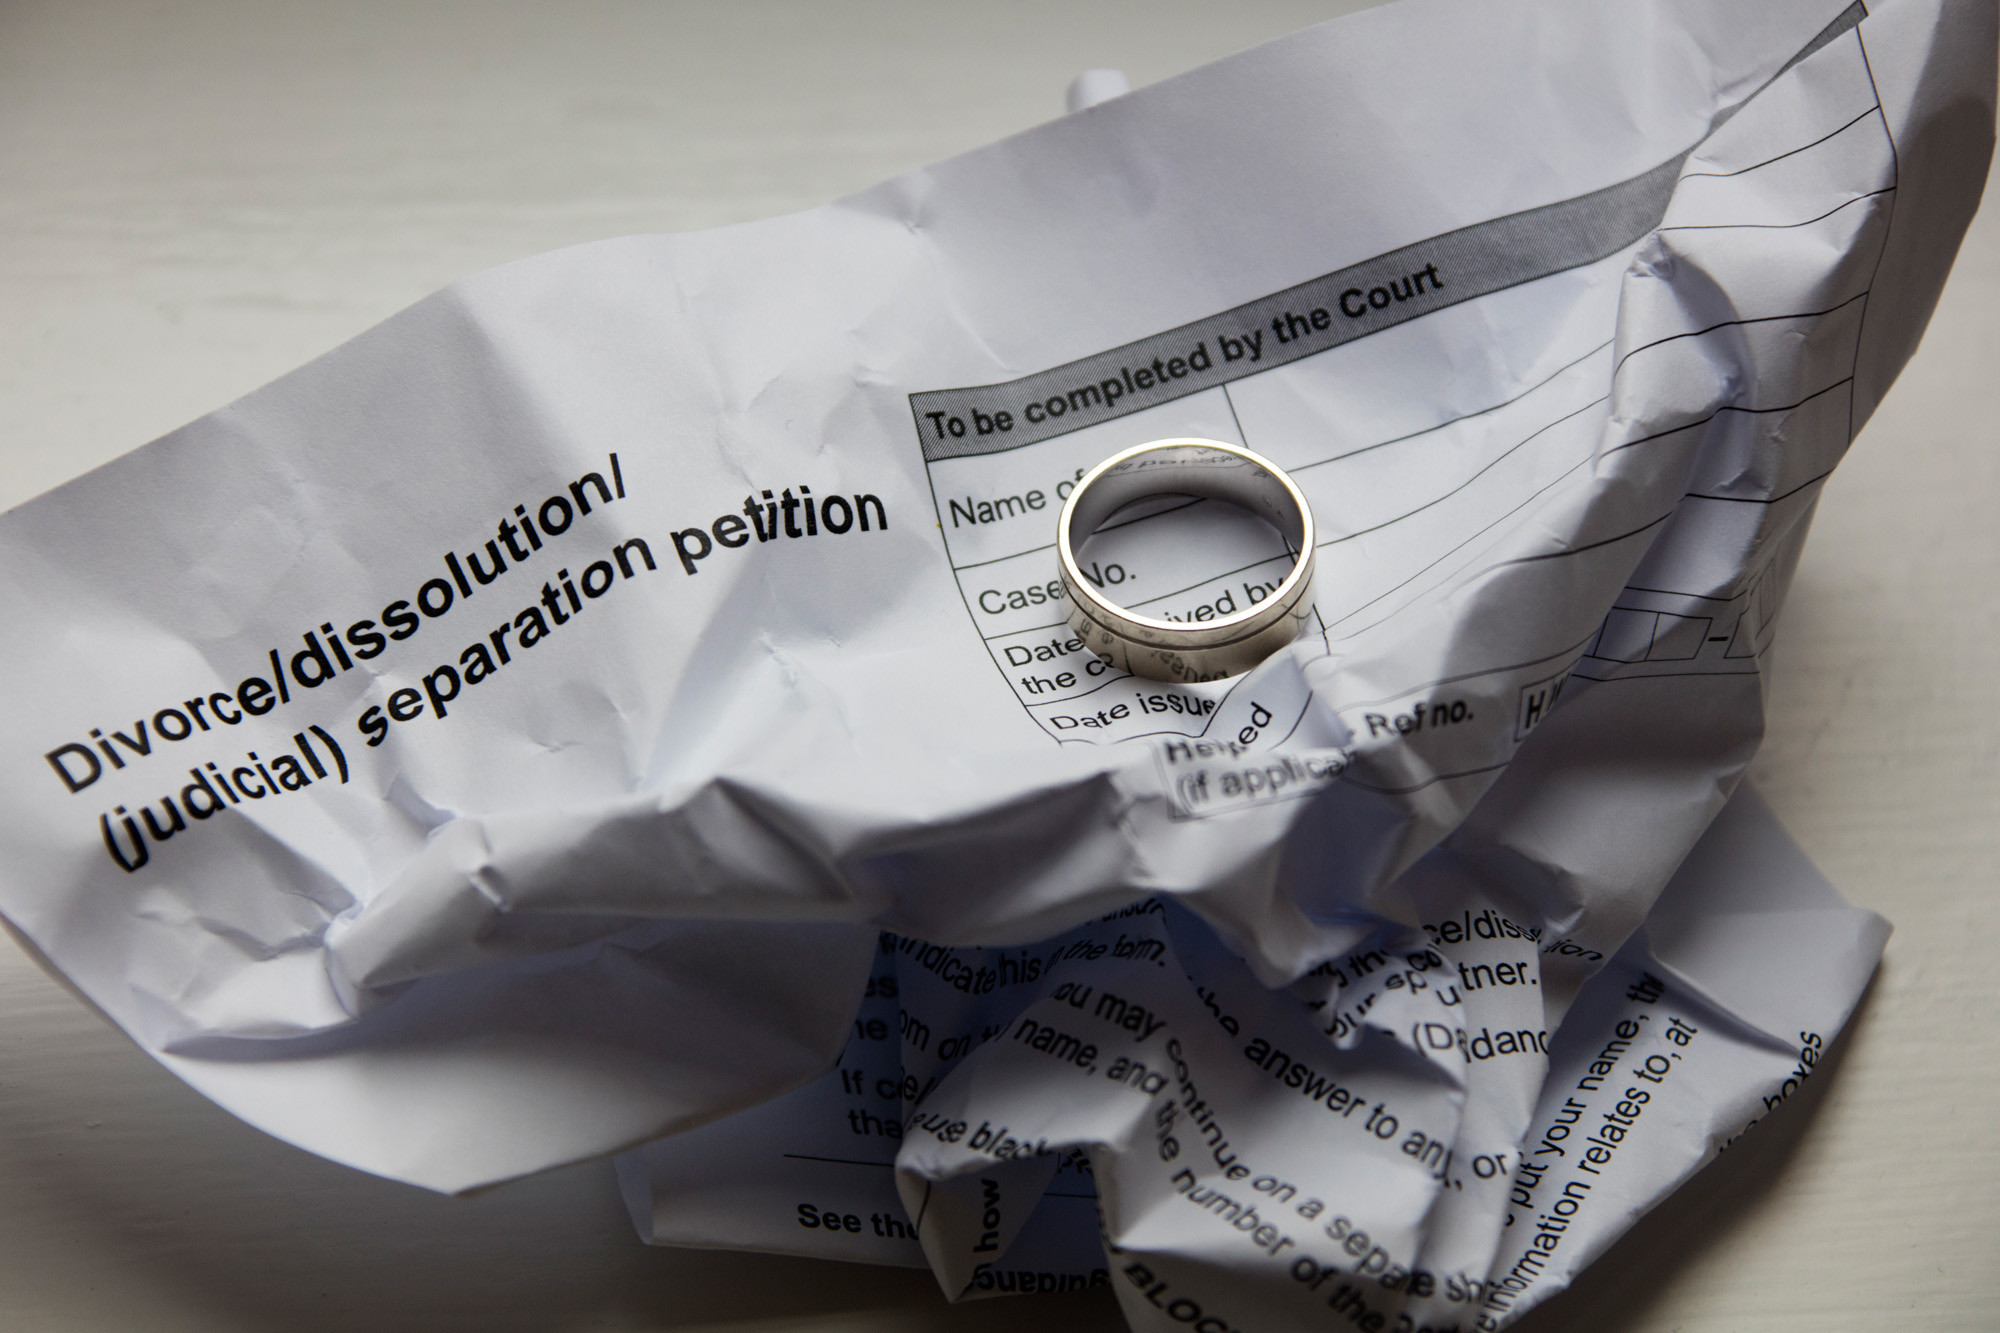 How to fill in a divorce petition